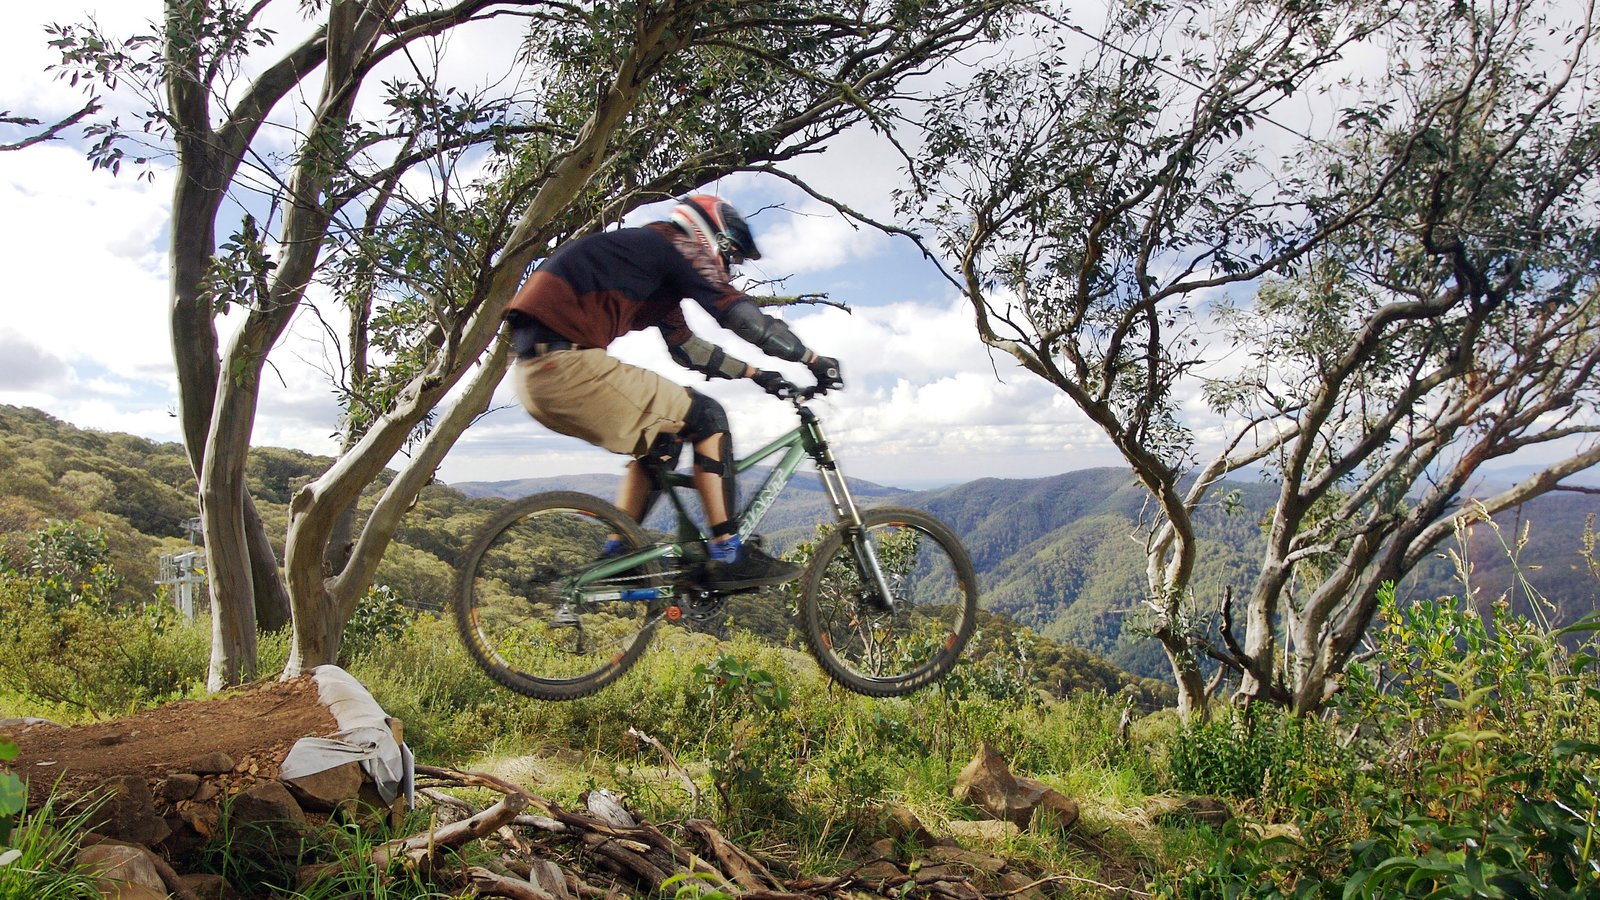 Mt. Buller Ski Slopes featuring mountain biking and mountains as well as an individual male